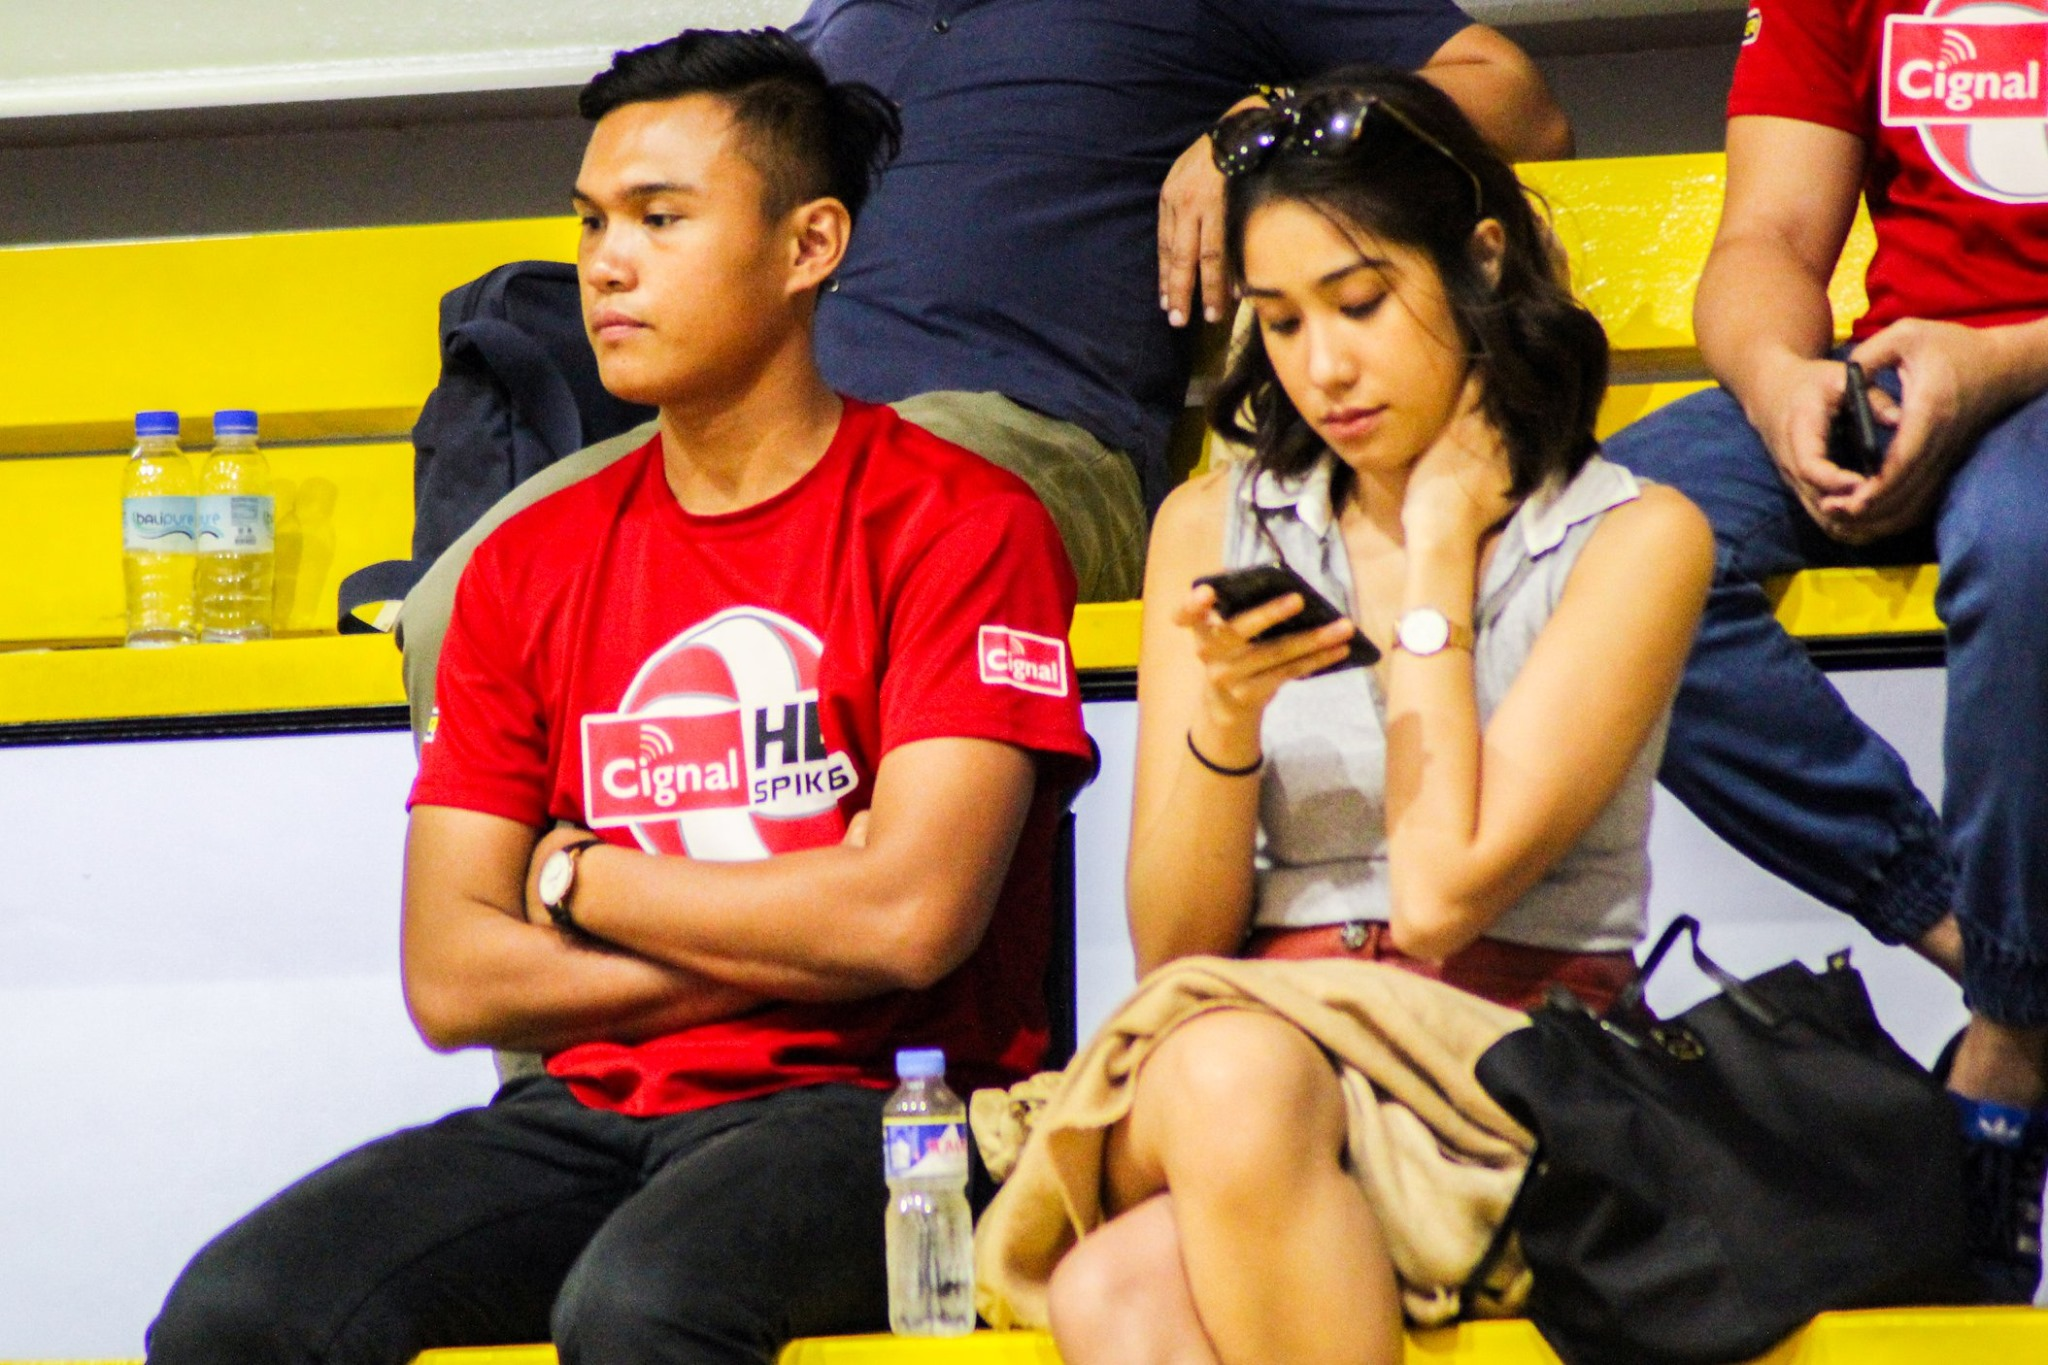 Tiebreaker Times Ish Polvorosa eager to get back in shape for Cignal's double gold bid News Spikers' Turf Volleyball  Ish Polvorosa Cignal HD Spikers 2019 Spikers Turf Season 2019 Spikers Turf Open Conference